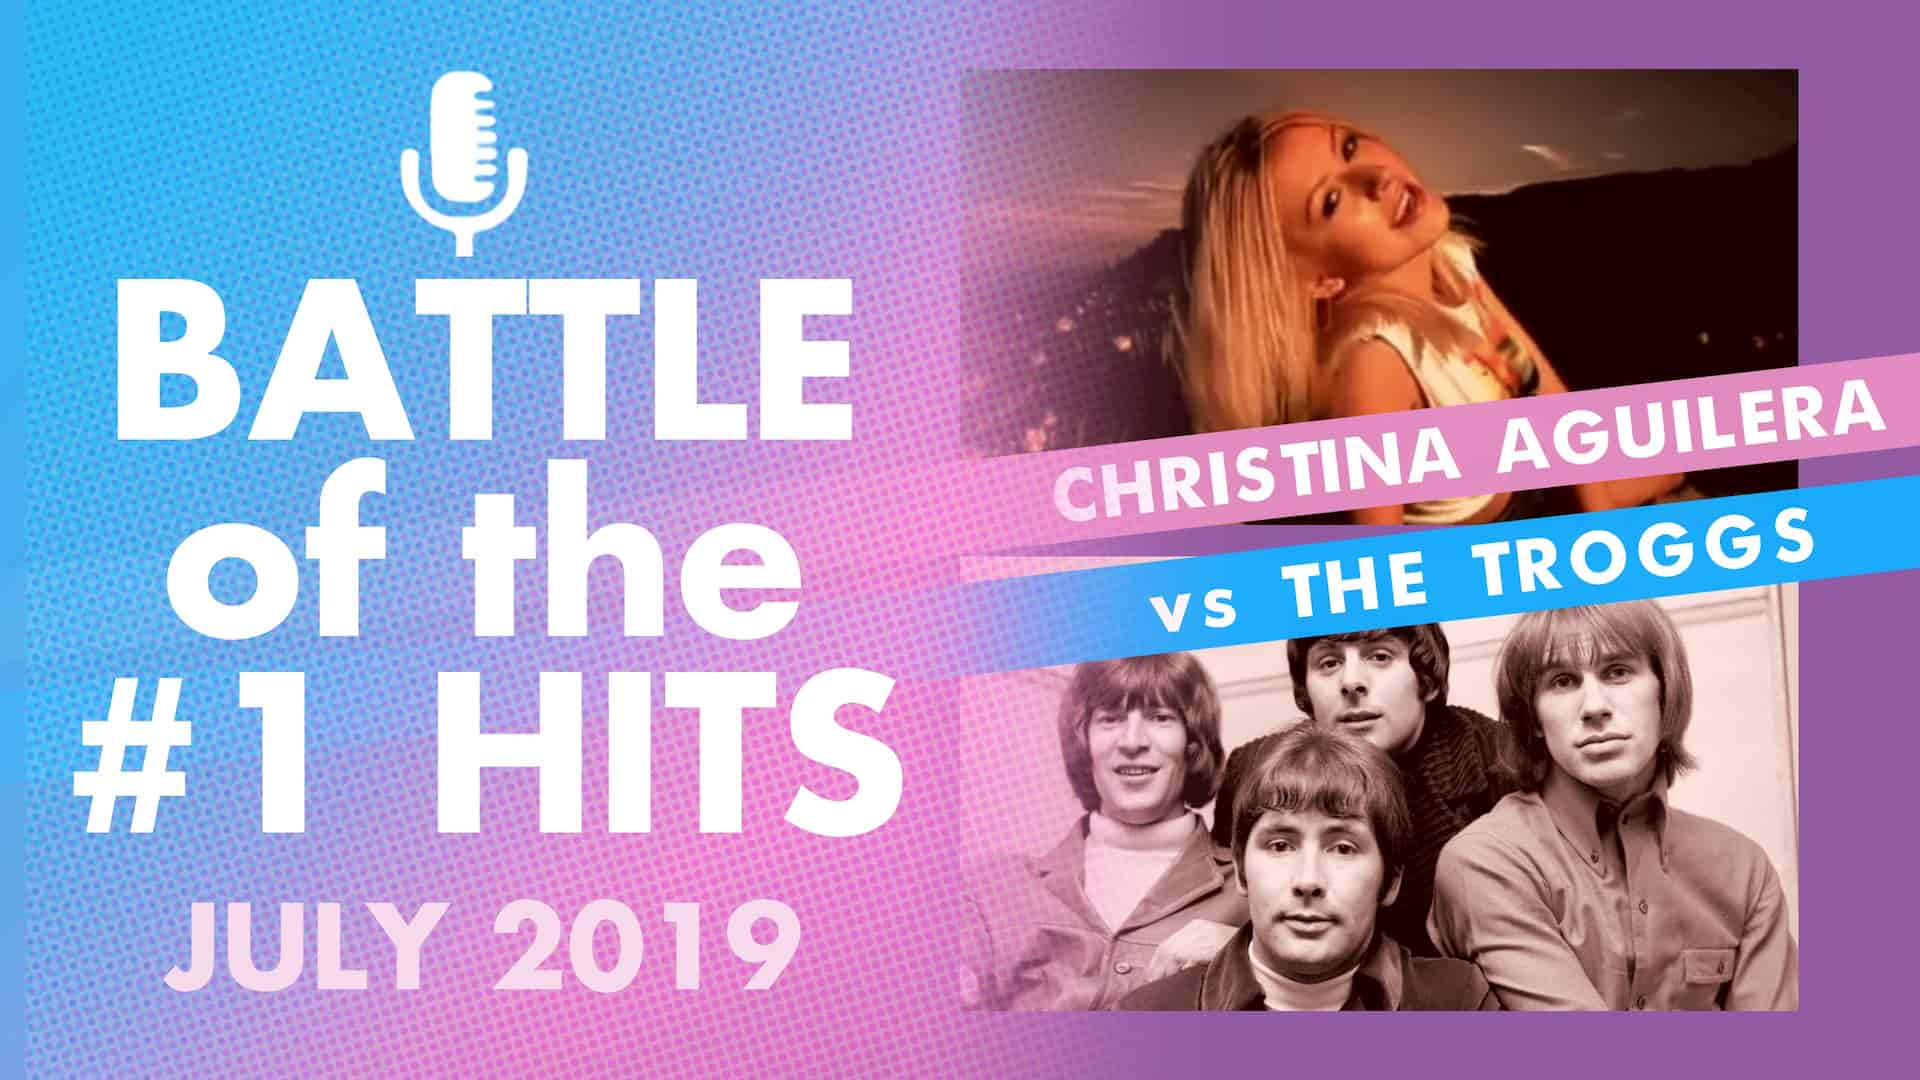 It's all about the summer hits in the first round of Battle of #1 hits summer edition: Christina Aguilera Vs The troggs